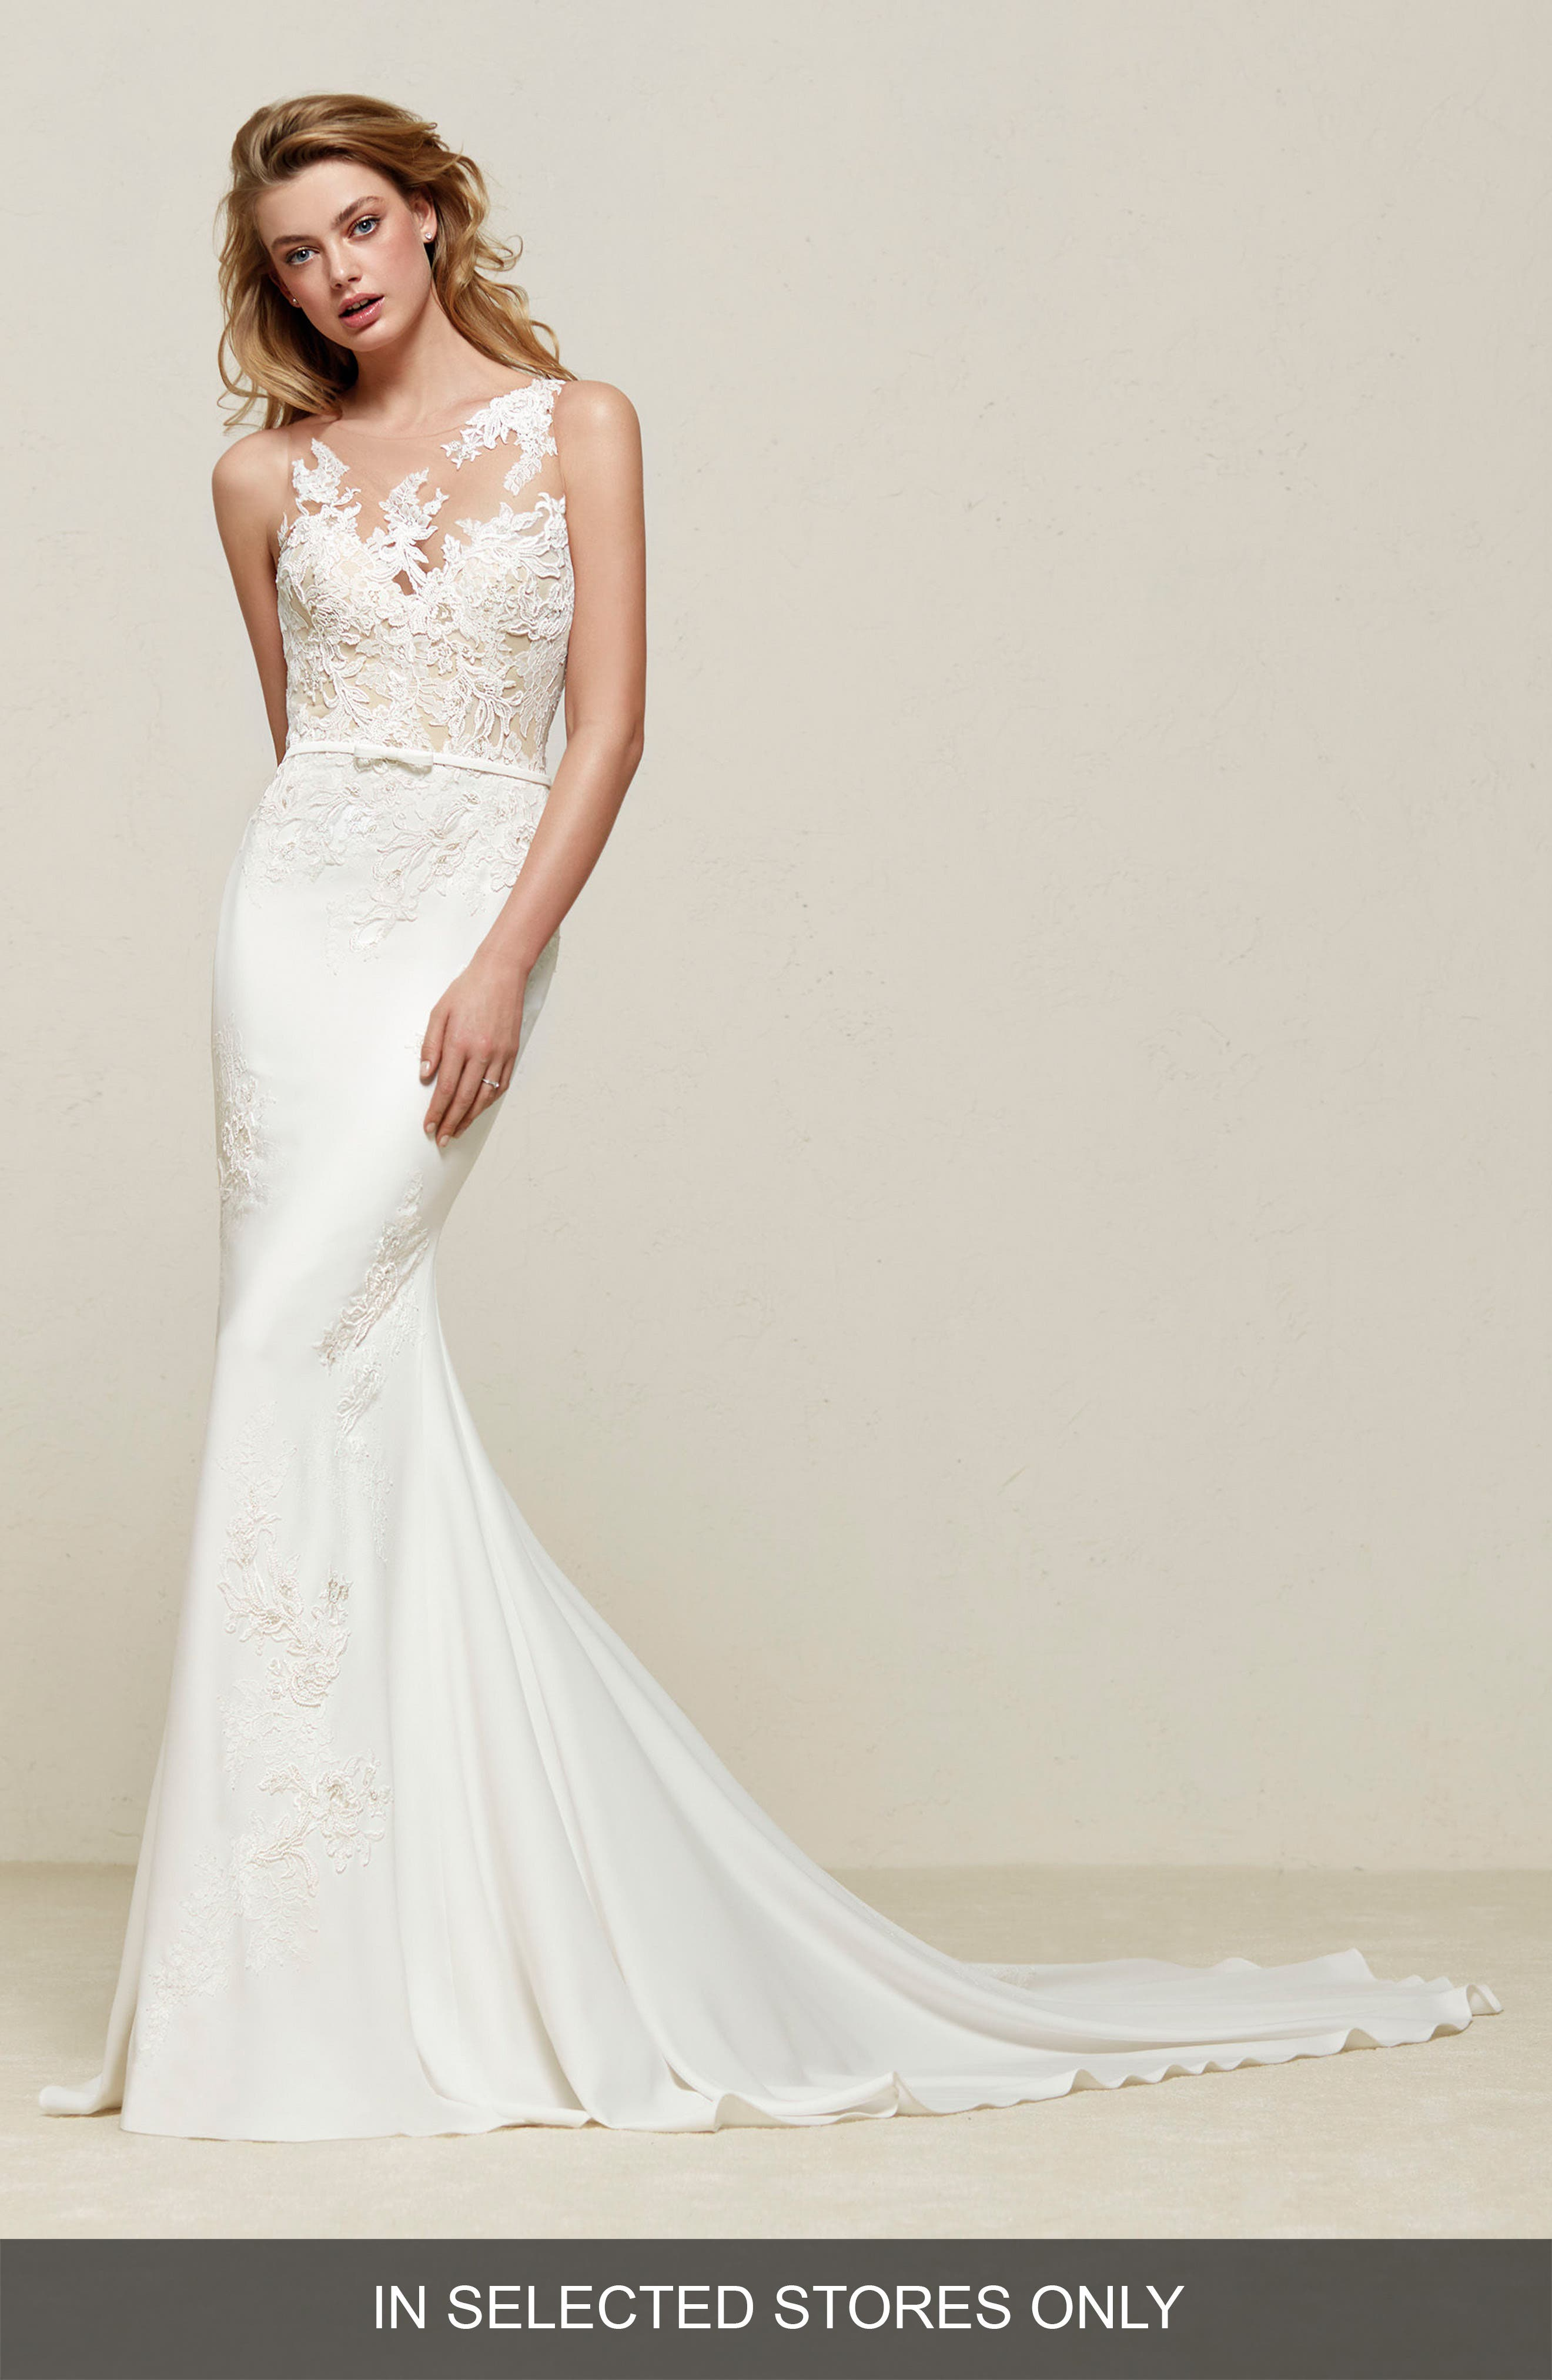 Pronovias Drenoa Lace Illusion Mermaid Gown (In Selected Stores Only)